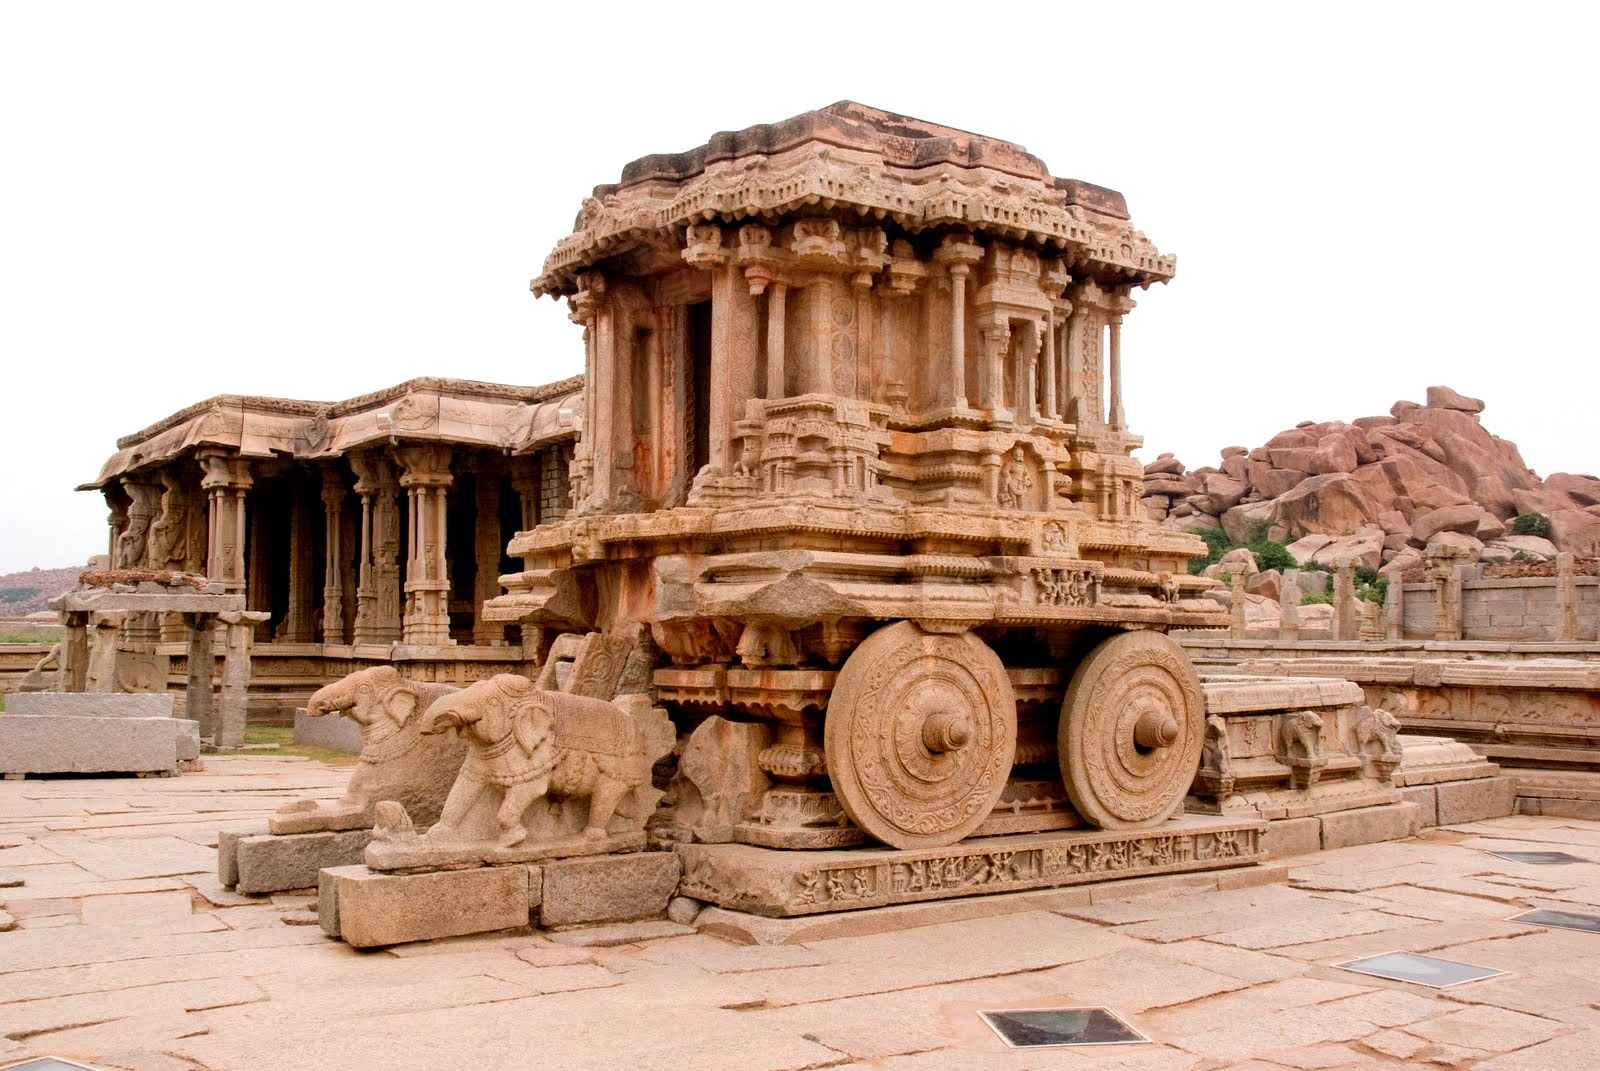 http://www.historydiscussion.net/history-of-india/art-and-architecture-under-the-vijayanagar-rulers/2868